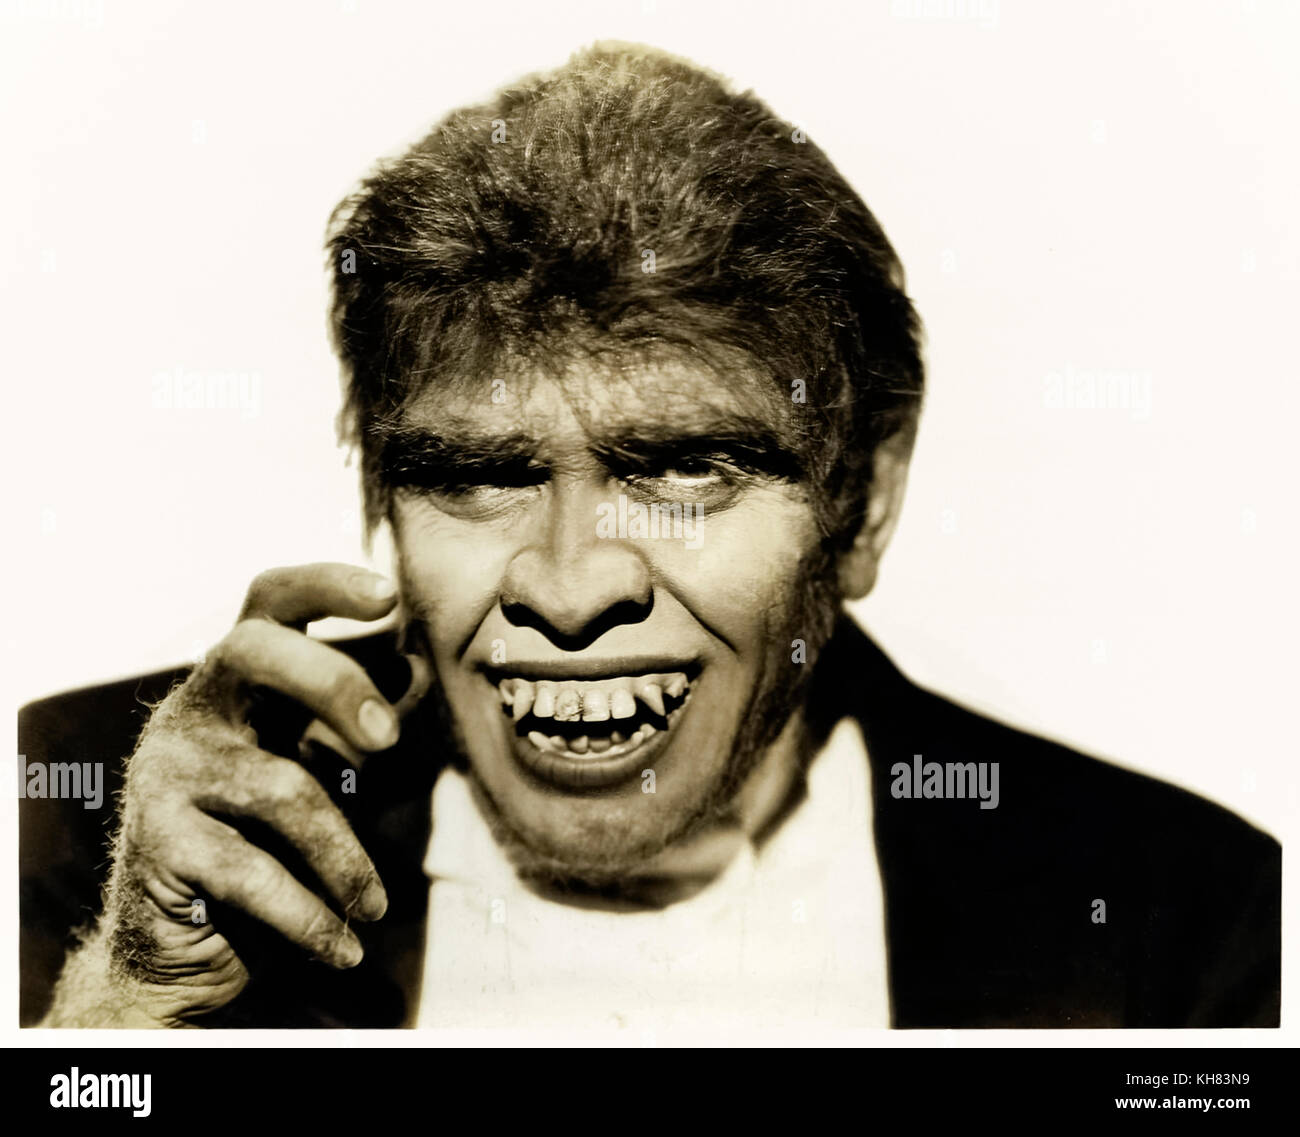 Dr. Jekyll and Mr. Hyde (1931) directed by Rouben Mamoulian, studio photograph of Fredric March in heavy make up - Stock Image